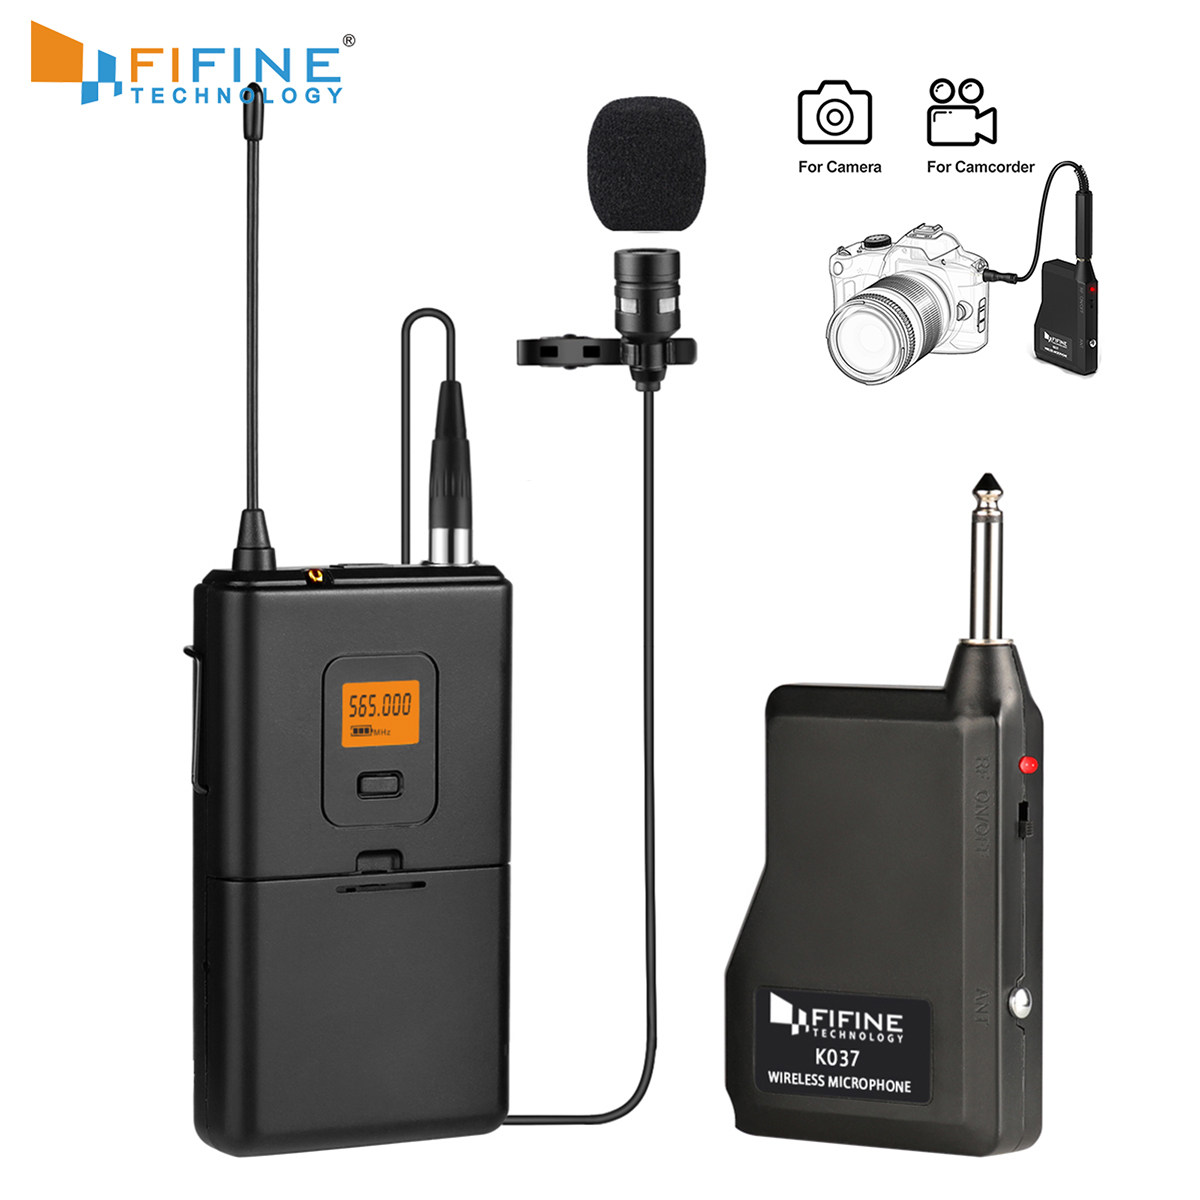 Fifine 20-Channel UHF Wireless Lavalier Lapel Microphone System with Bodypack Transmitter Lapel Mic and Portable Receiver k037